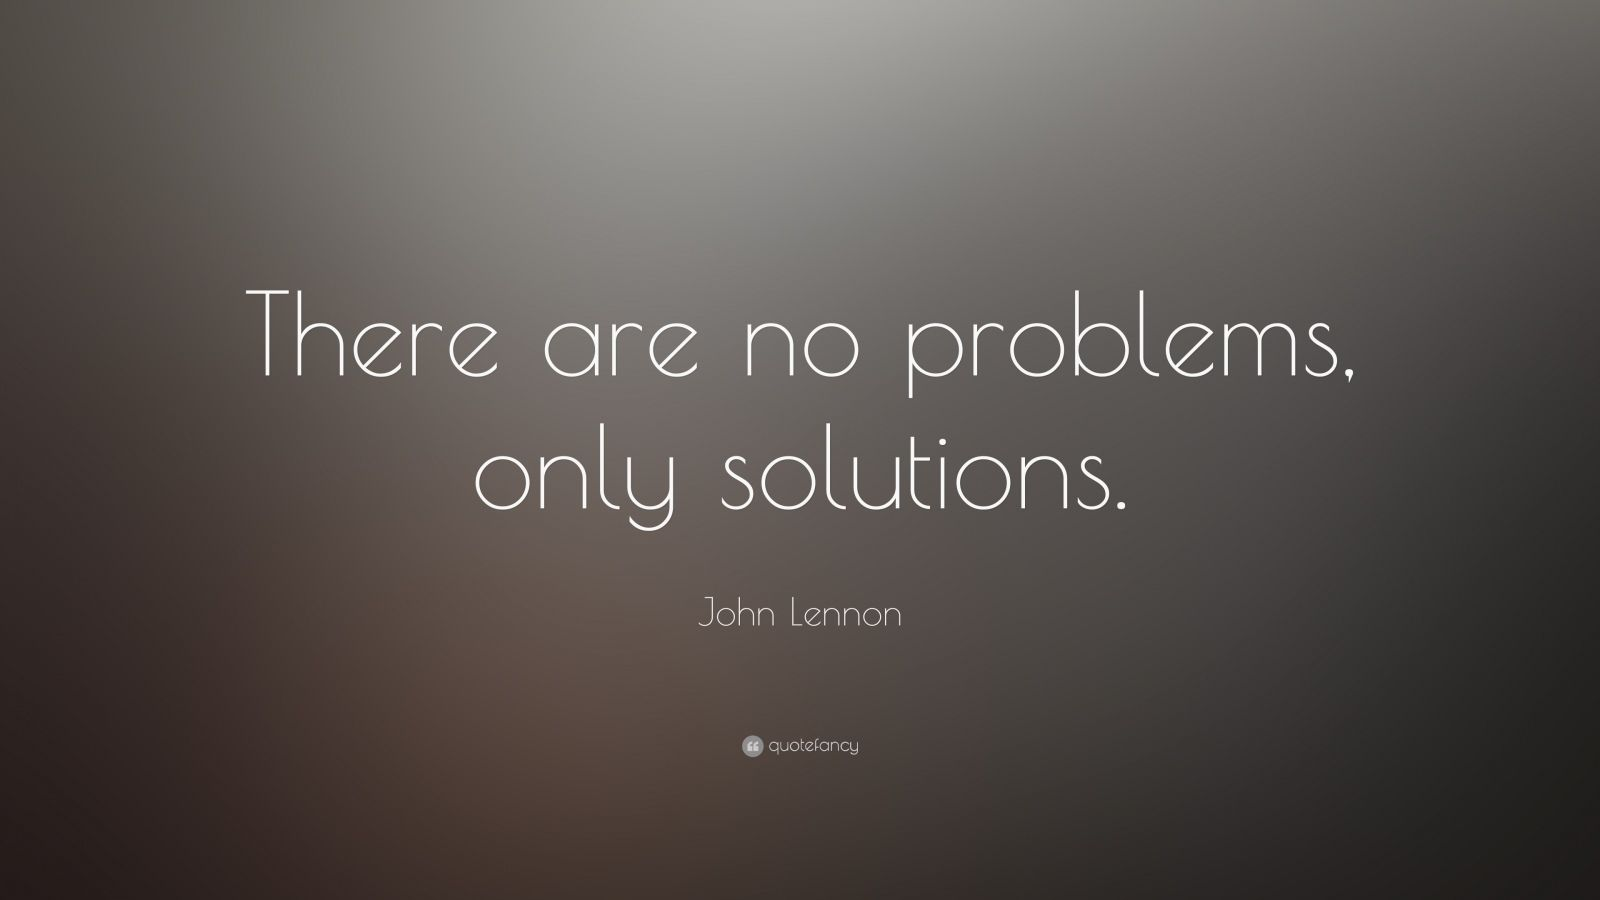 Mother Teresa Quotes Wallpapers John Lennon Quote There Are No Problems Only Solutions